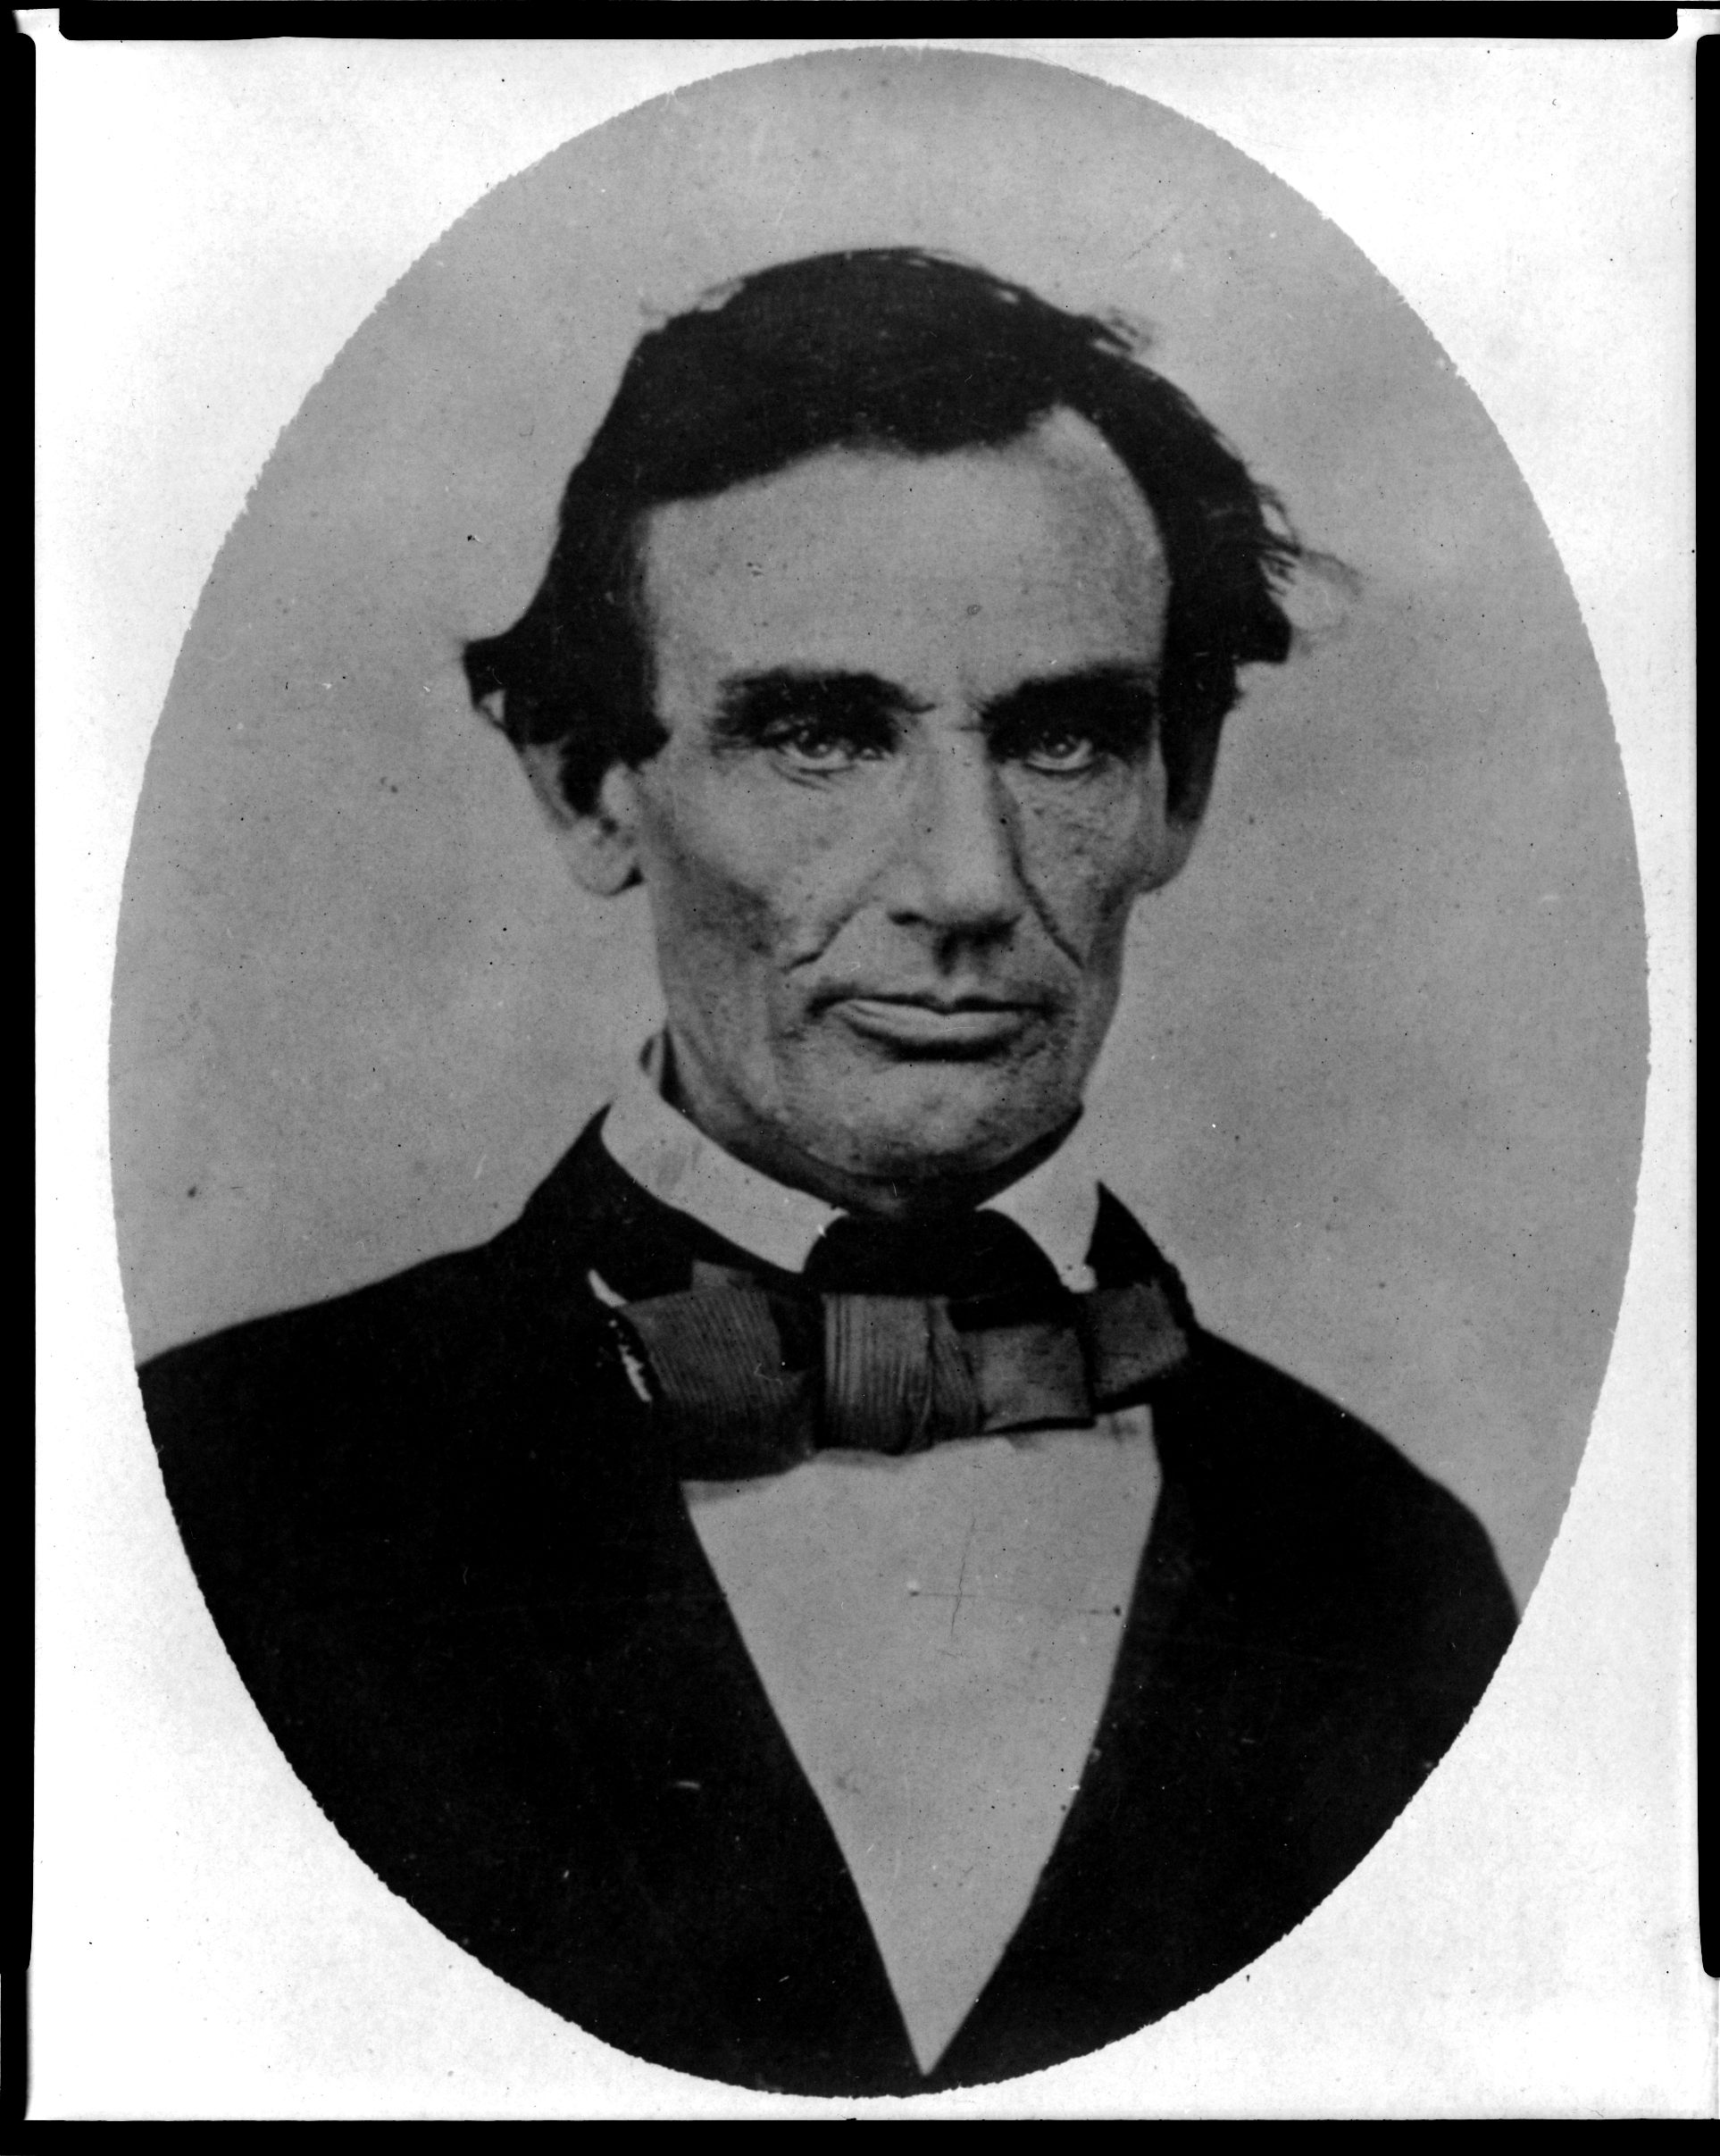 a history of president abraham lincoln and the civil war Abraham lincoln civil war stories and millions of other books are available for   abraham lincoln than about any other president in united states history.